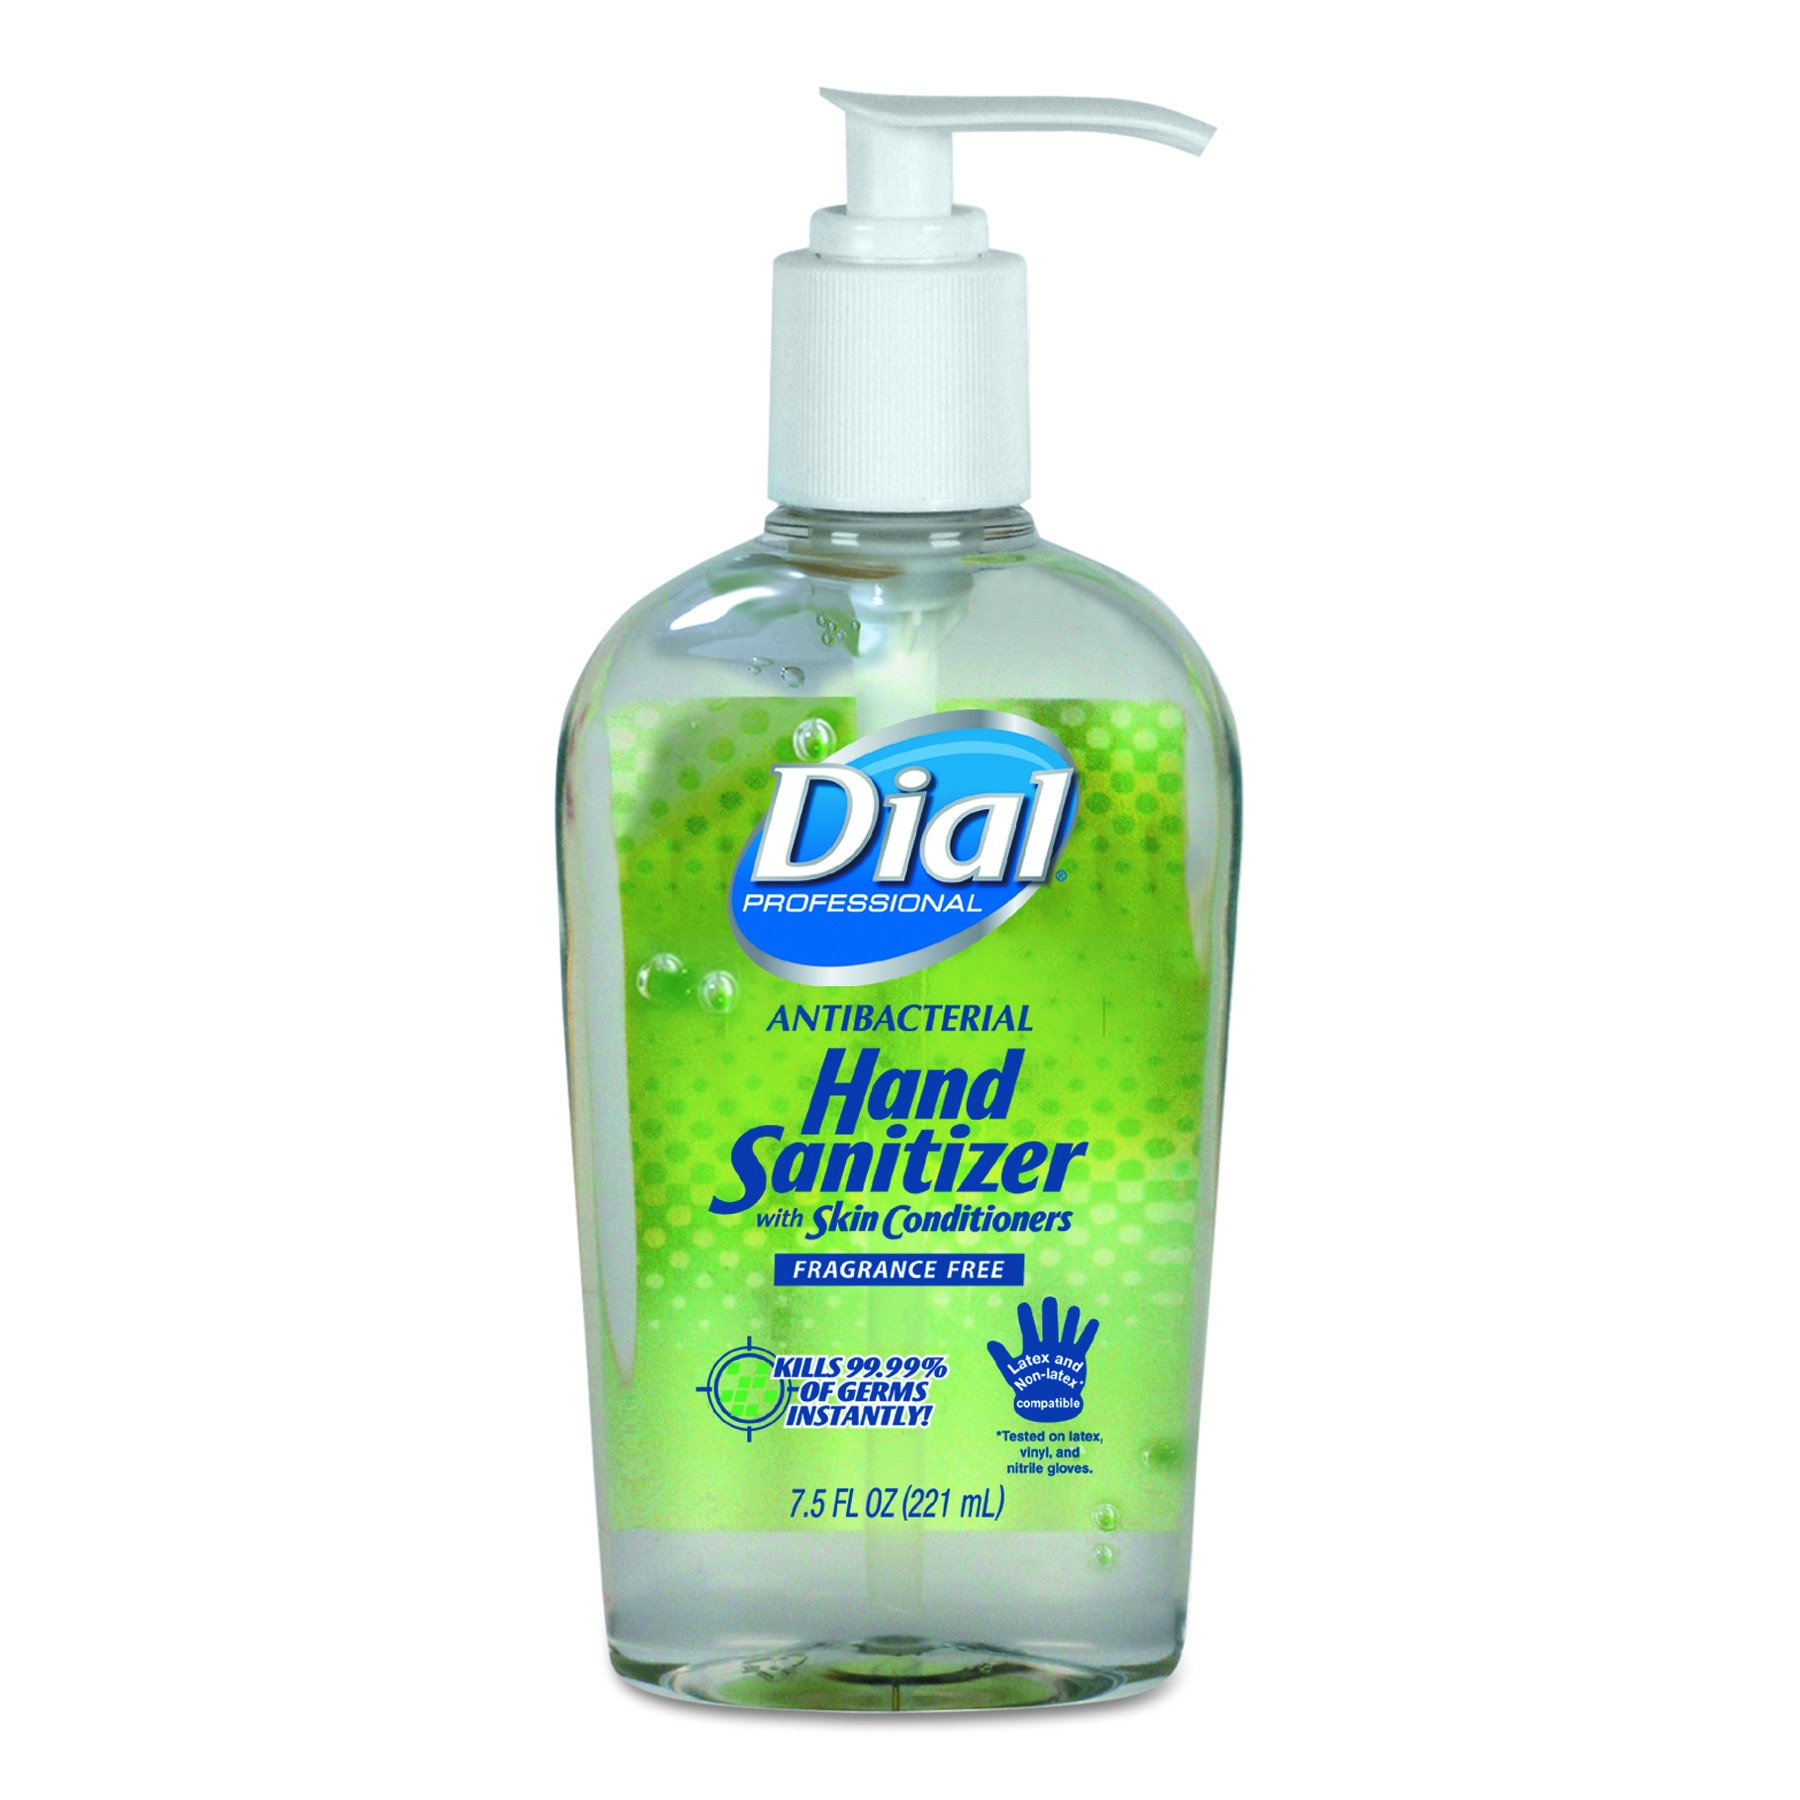 Dial Professional 01585 Antibacterial Gel Hand Sanitizer with Moisturizers, 7.5oz Pump Bottle (Case of 12) by Dial (Image #1)